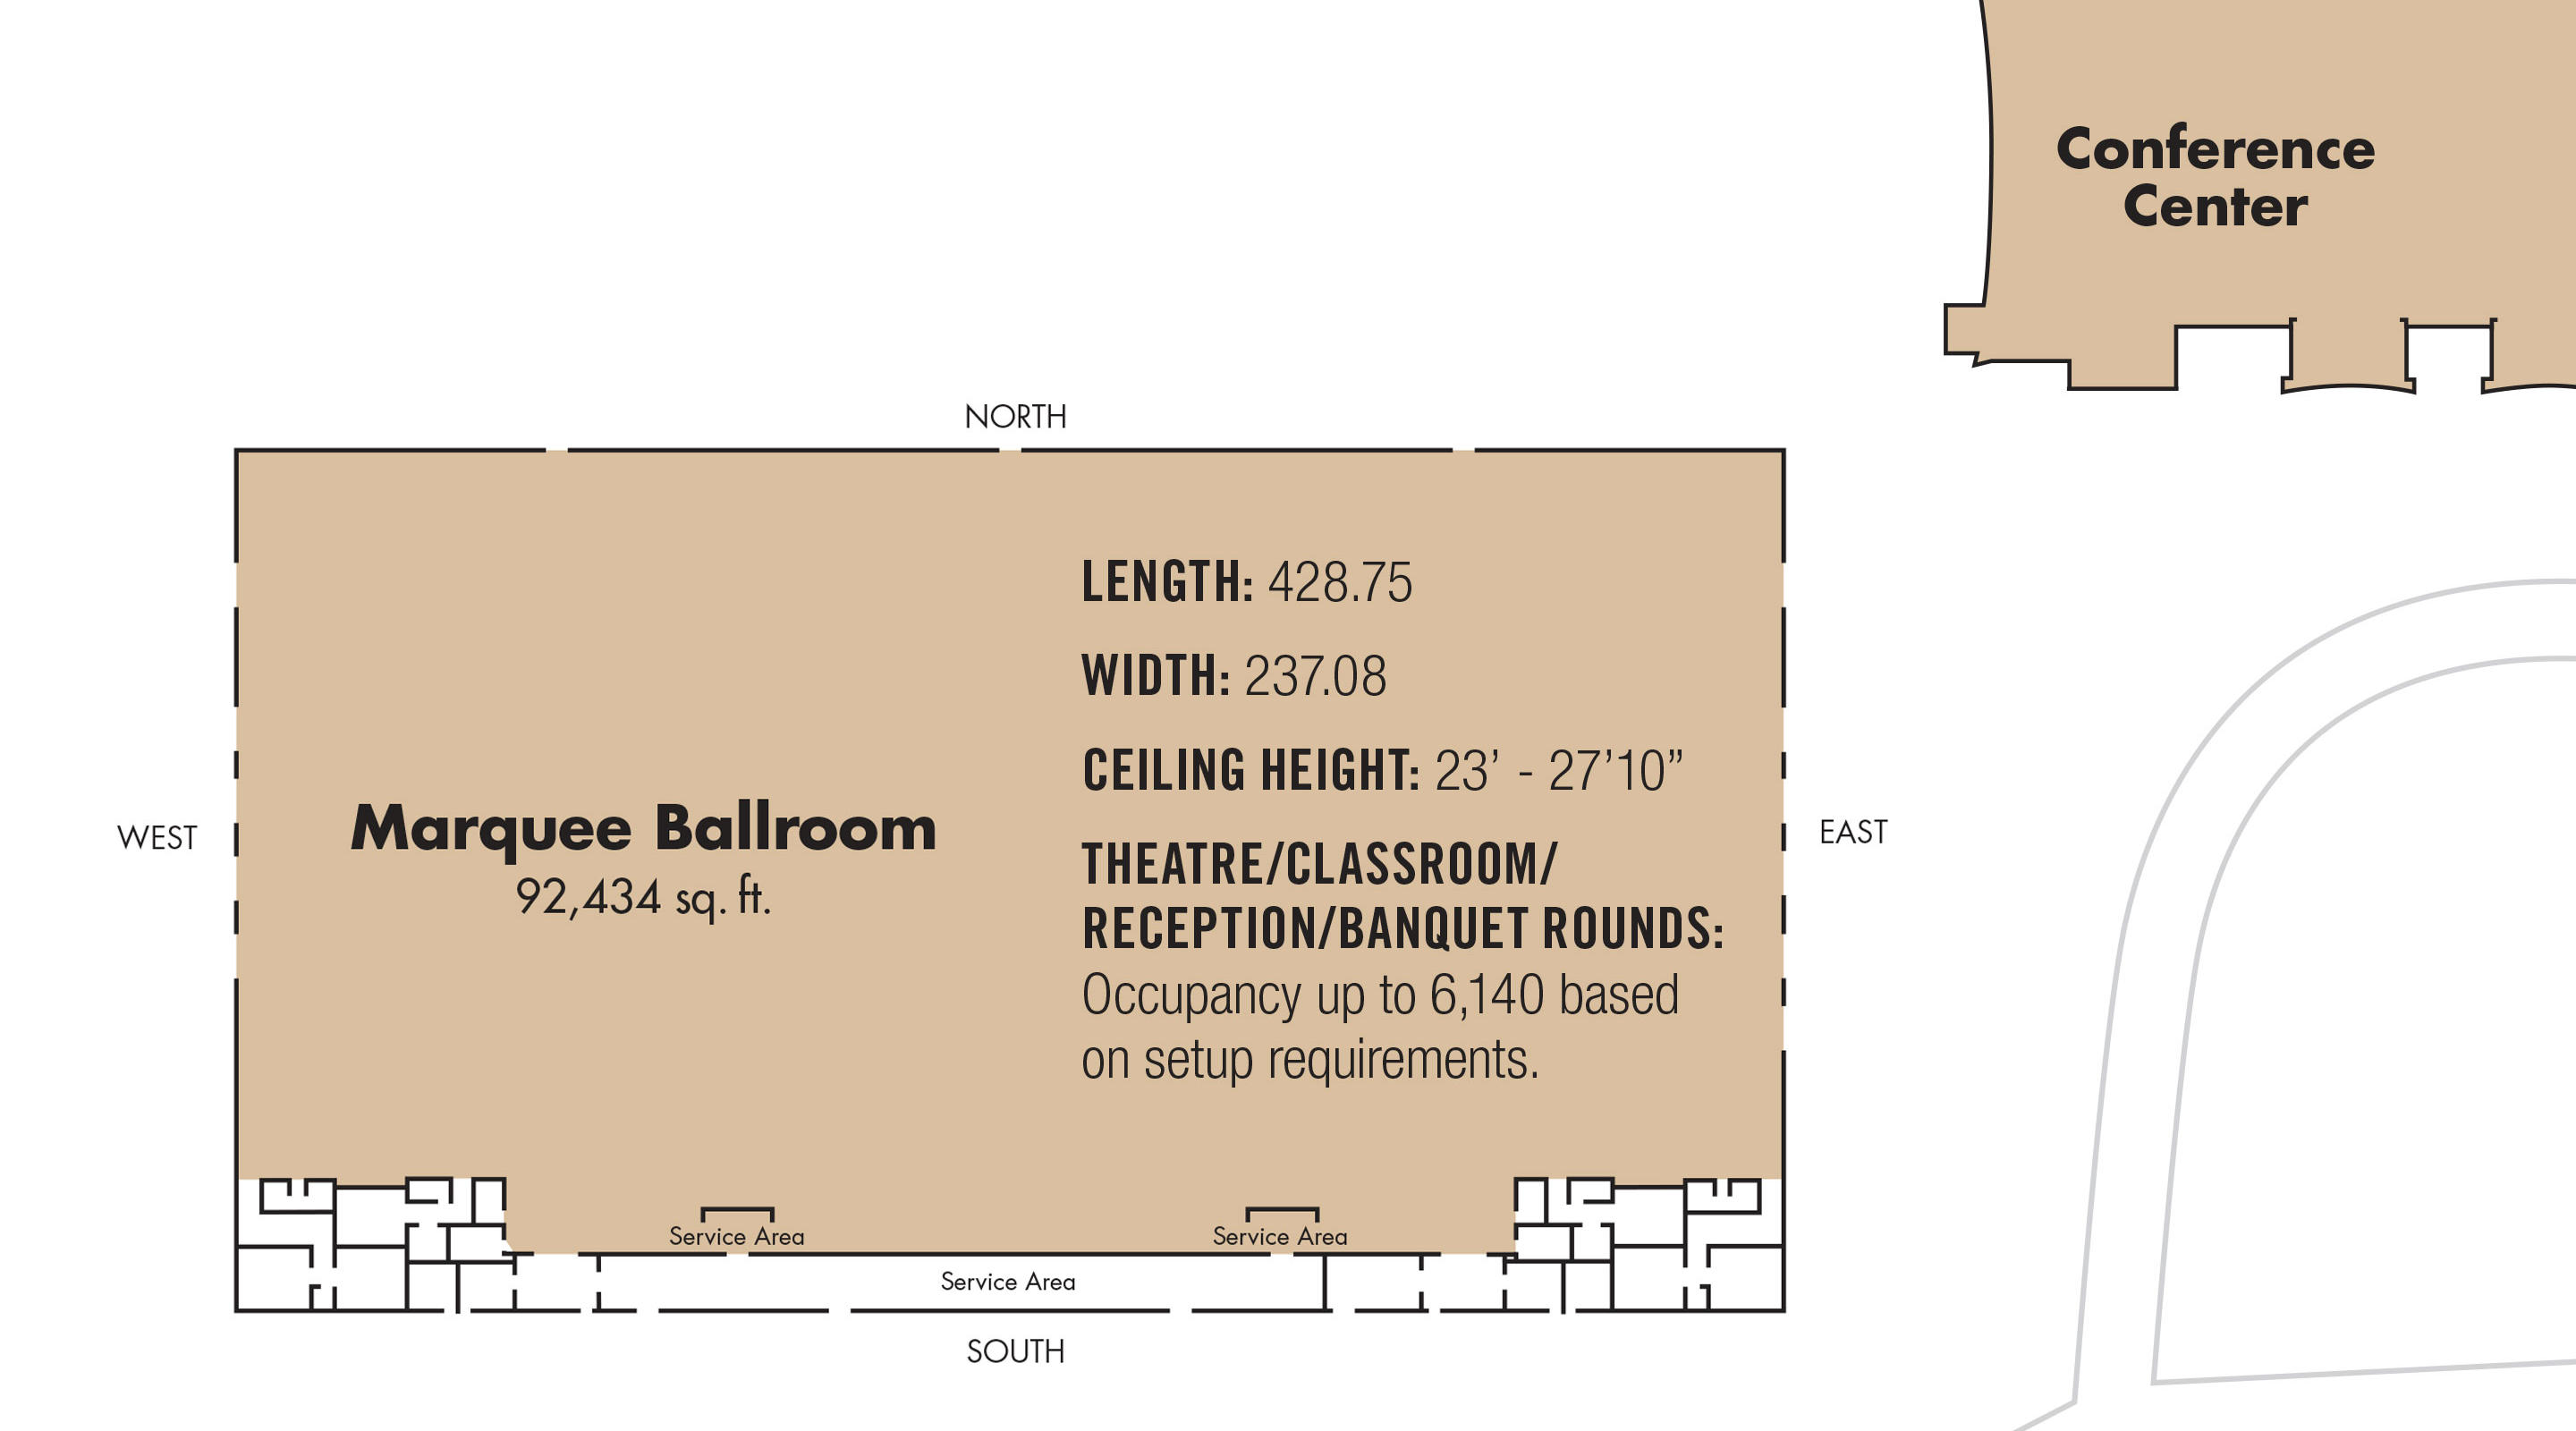 Meetings And Conventions Mgm Grand Las Vegas